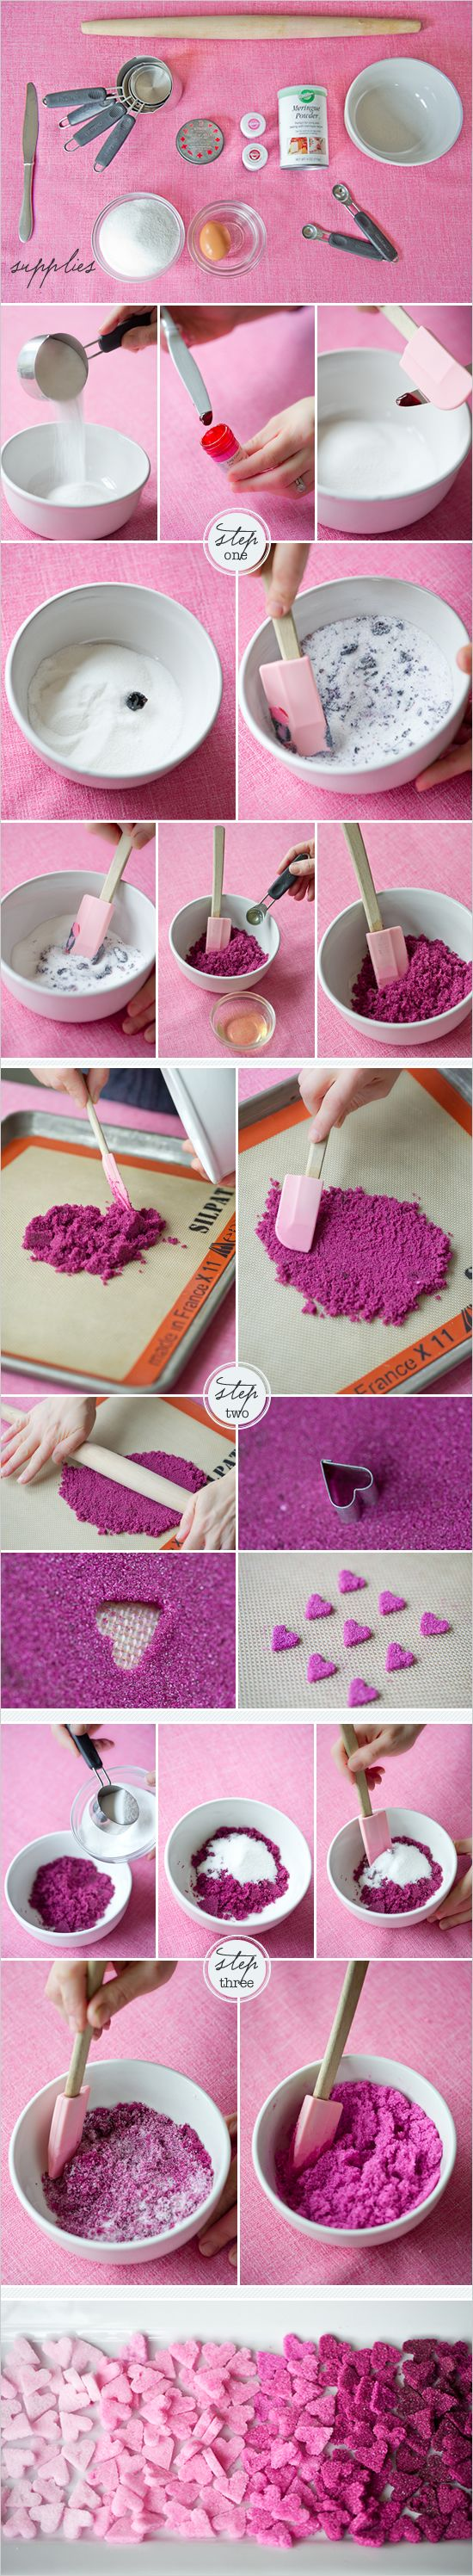 DIY sugar hearts!